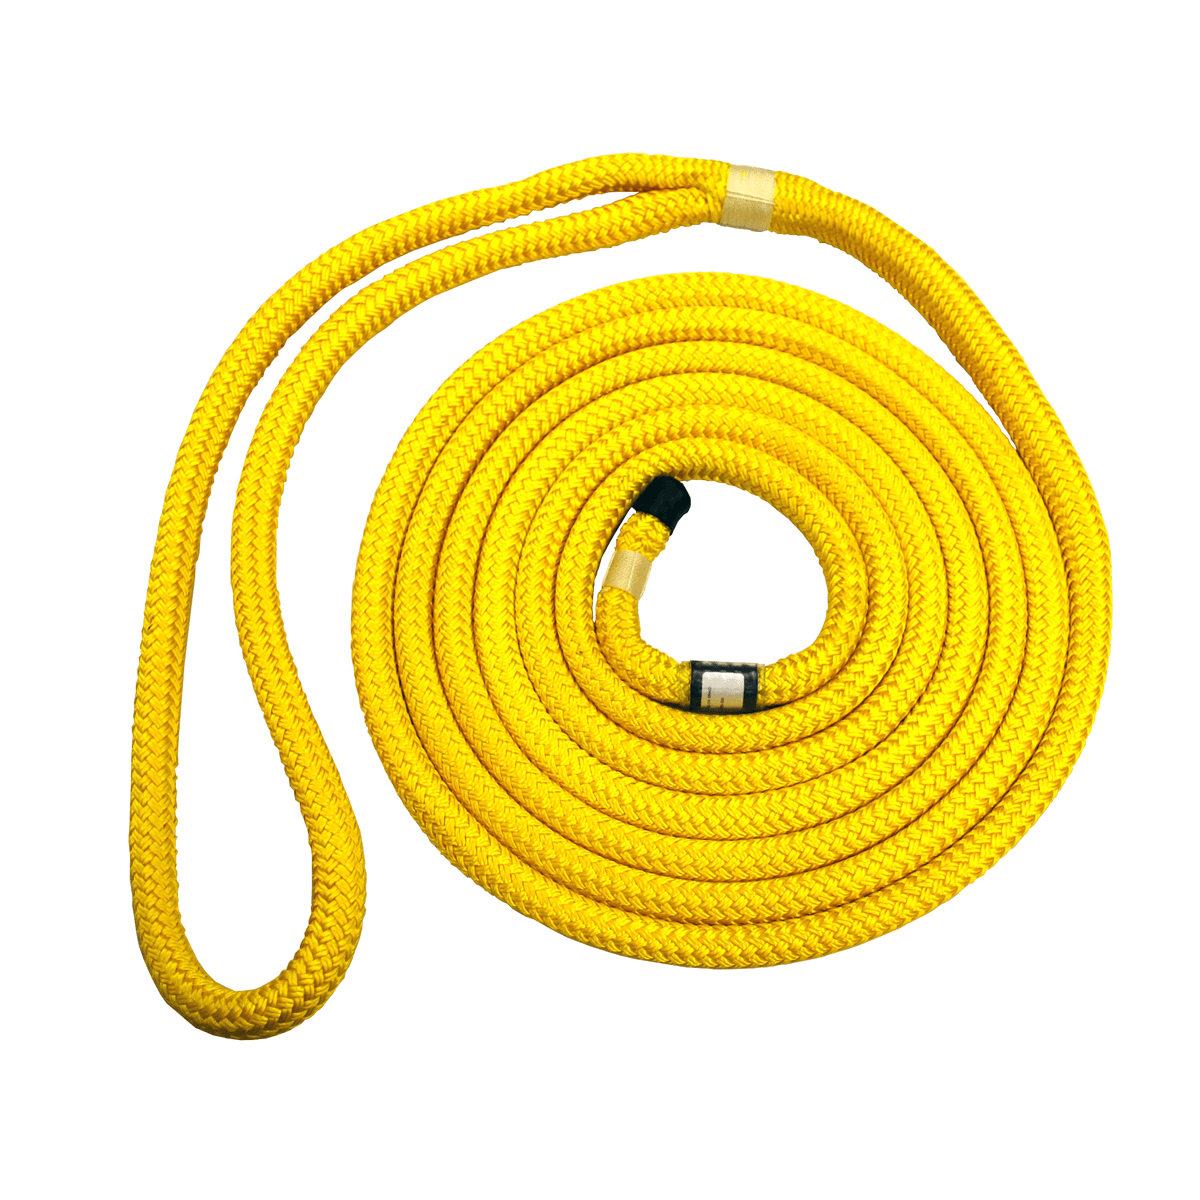 English Braid Alliance Rigging Sling 16mm 5.0m (YELLOW) 20cm Eye